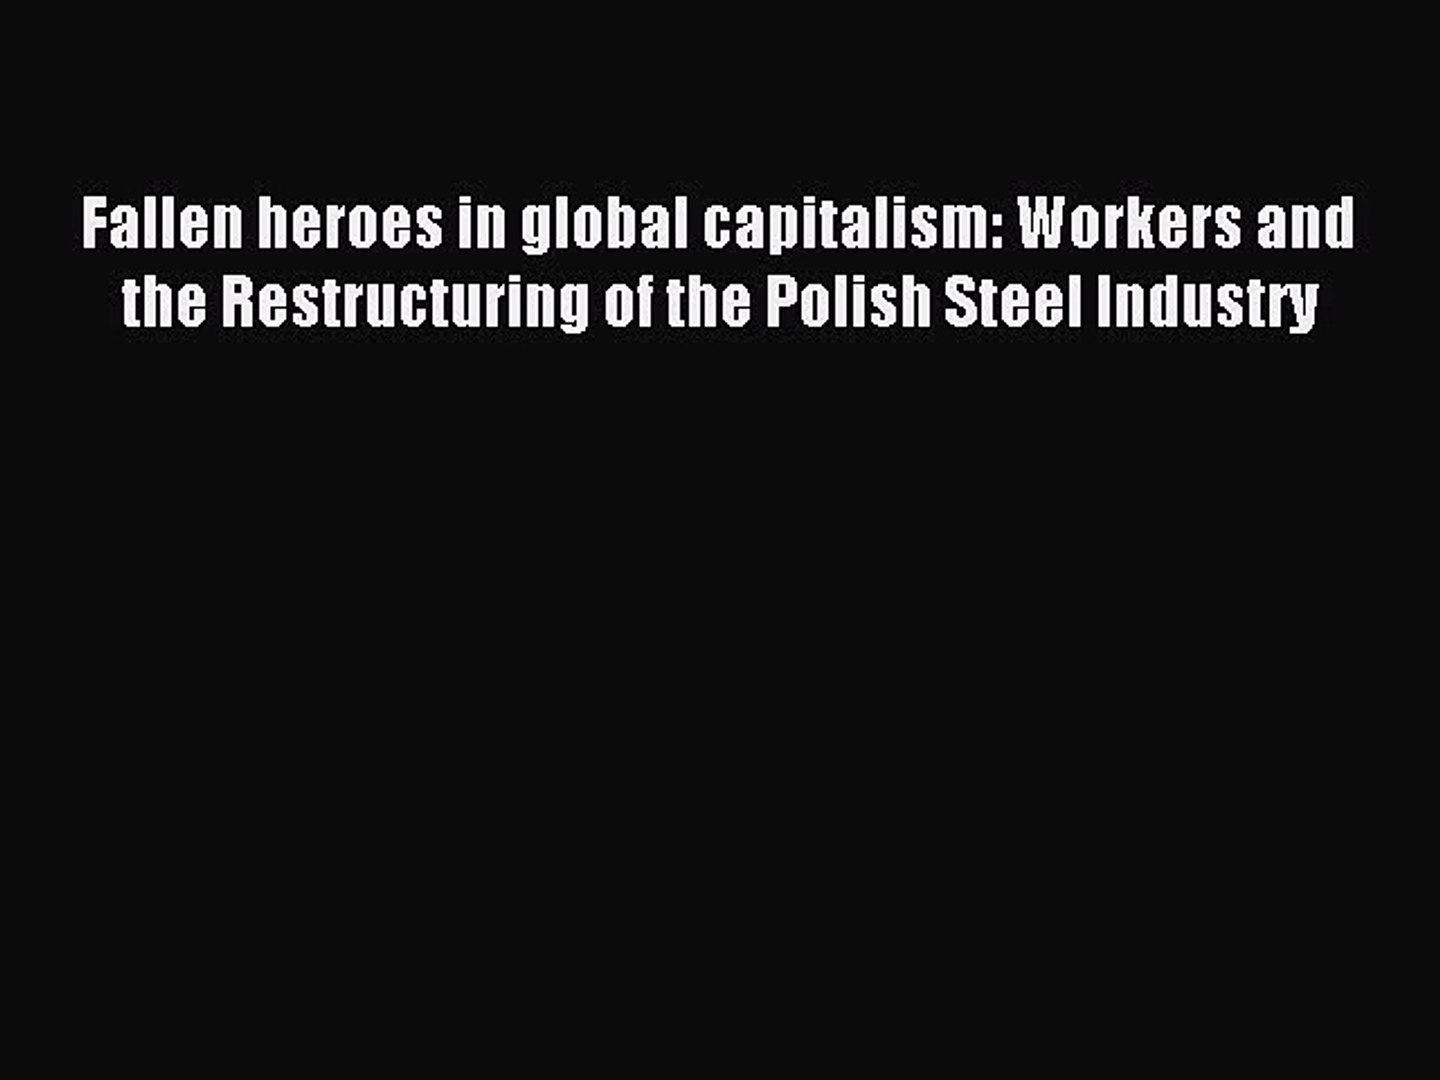 [PDF] Fallen heroes in global capitalism: Workers and the Restructuring of the Polish Steel